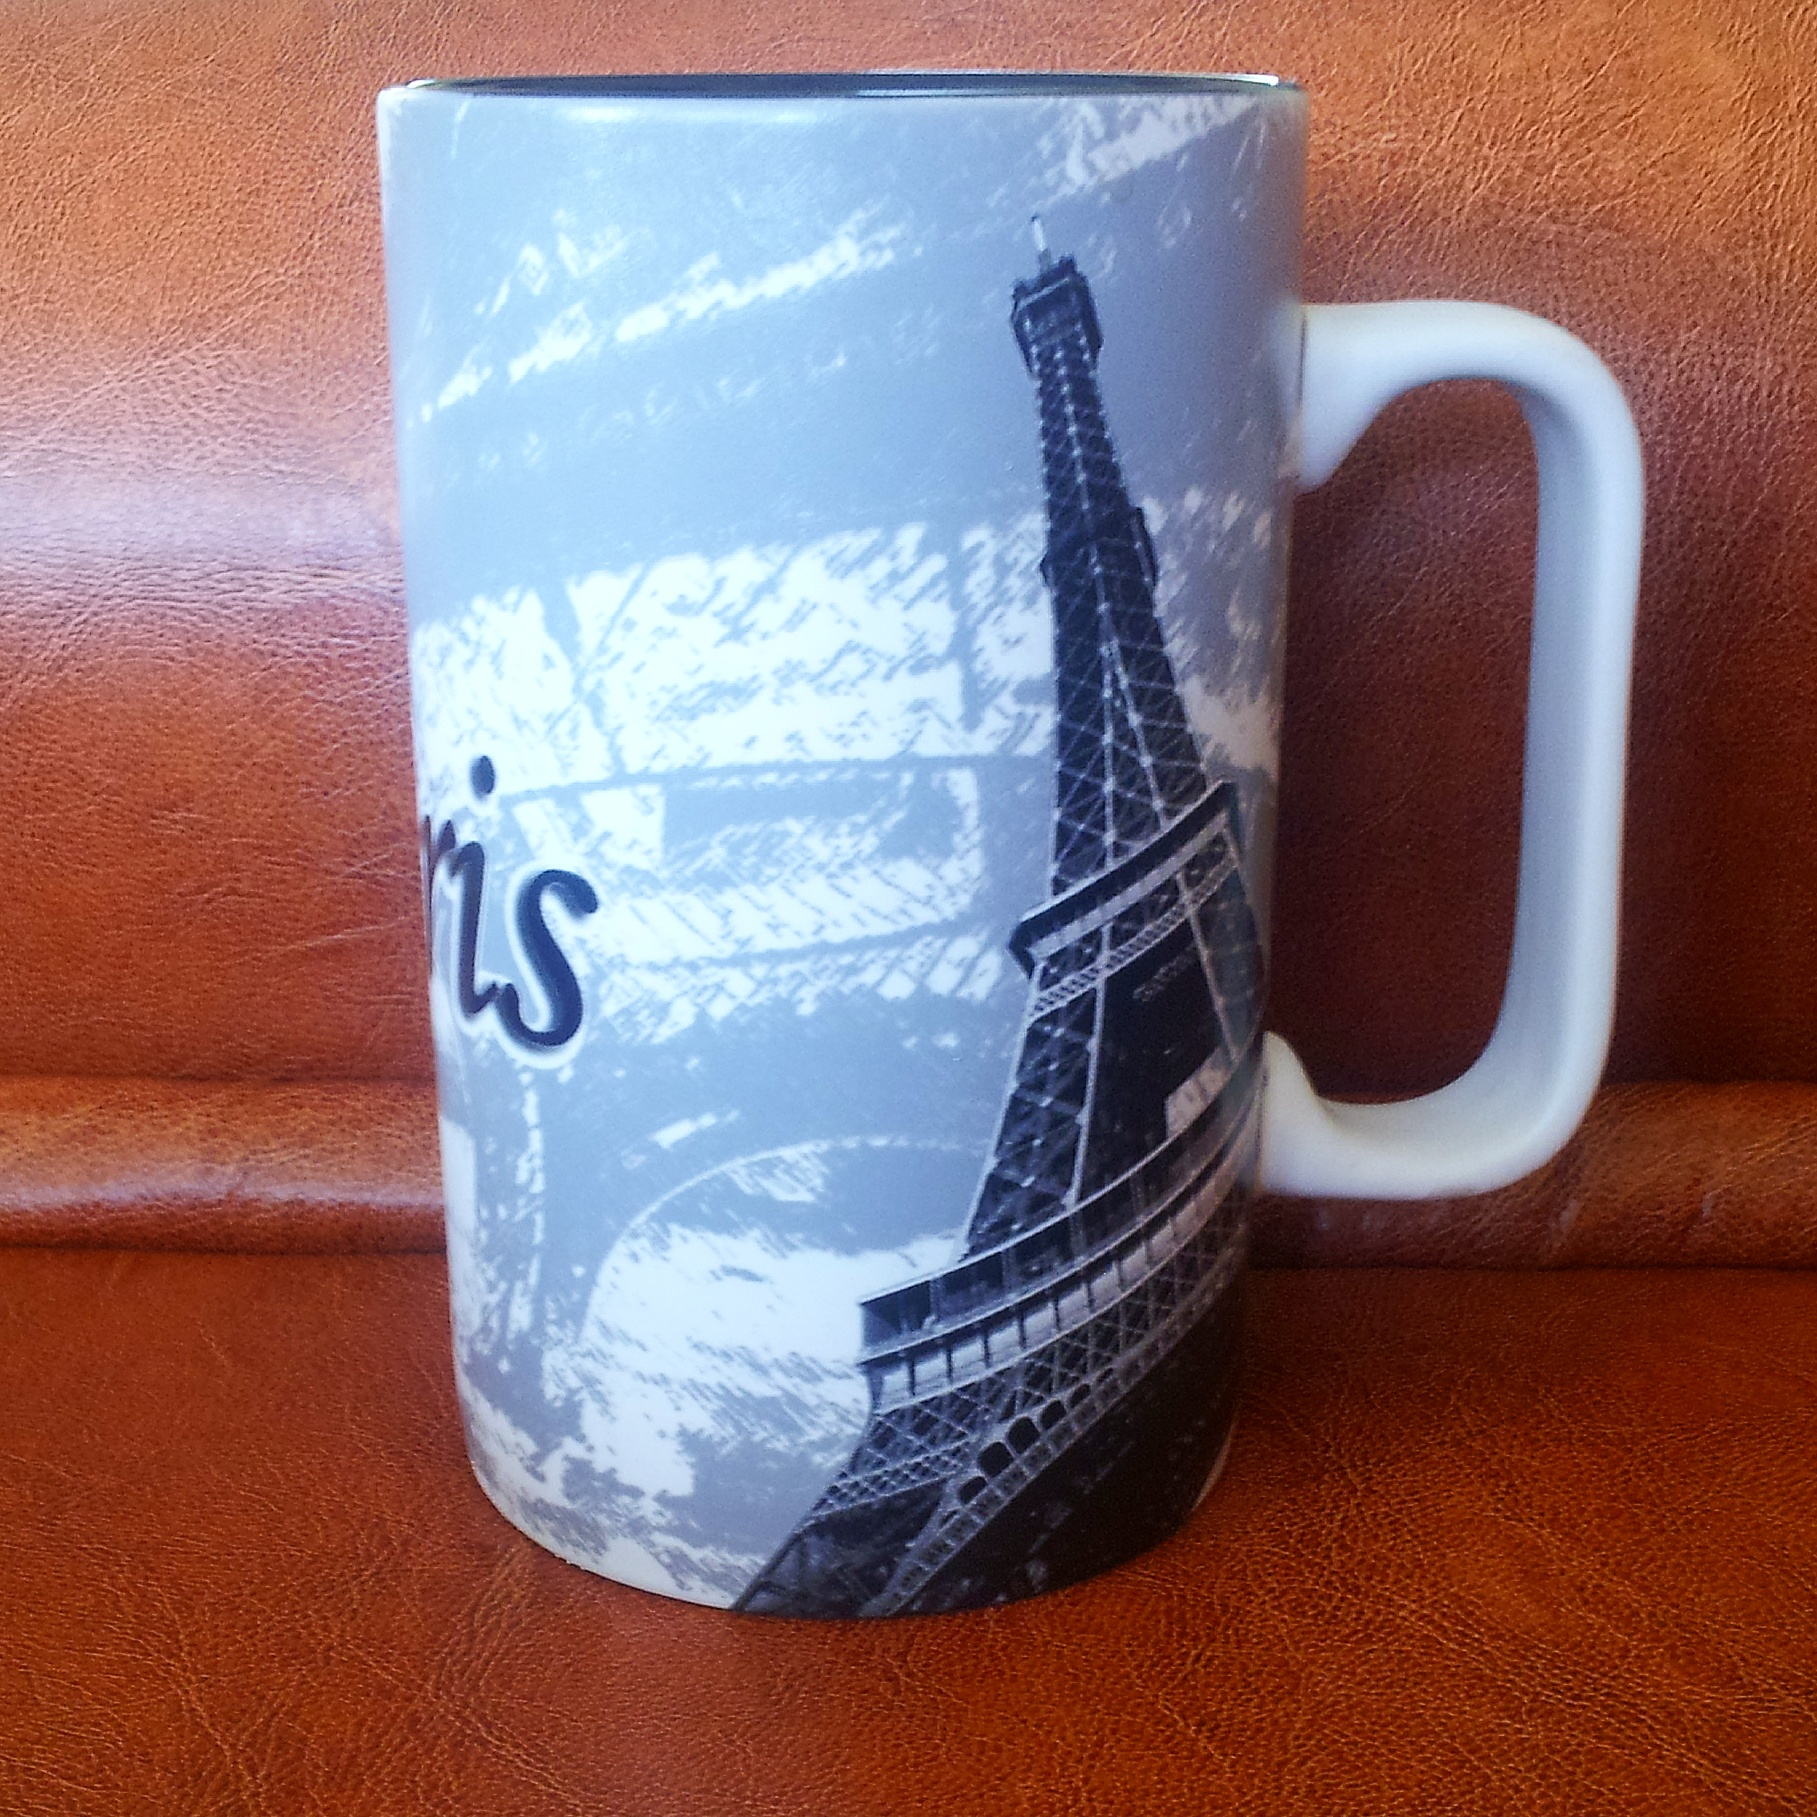 Mug from Paris, France - travel souvenir